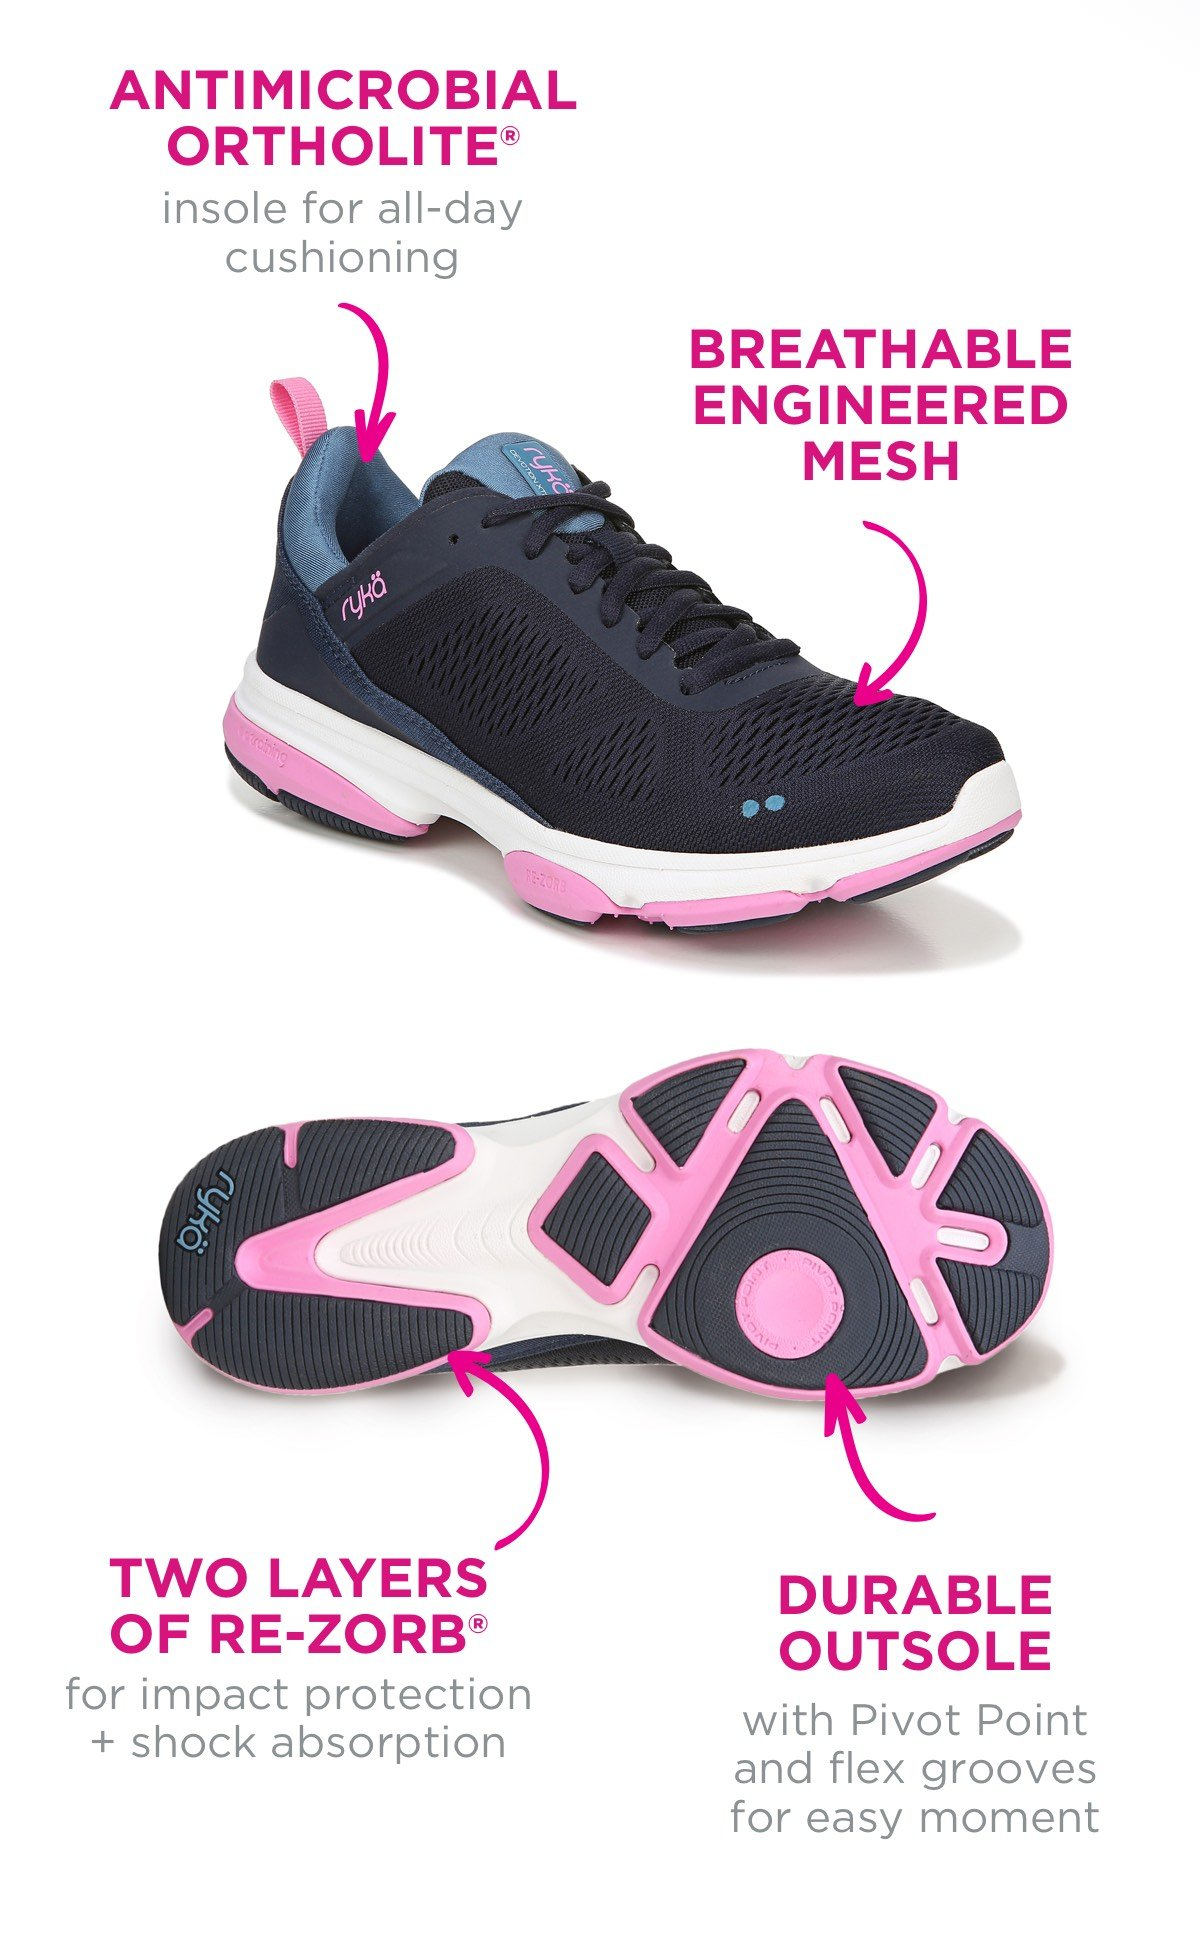 Antimicrobial ortholite, breathable mesh, two layers of re-zorb, and a durable outsole